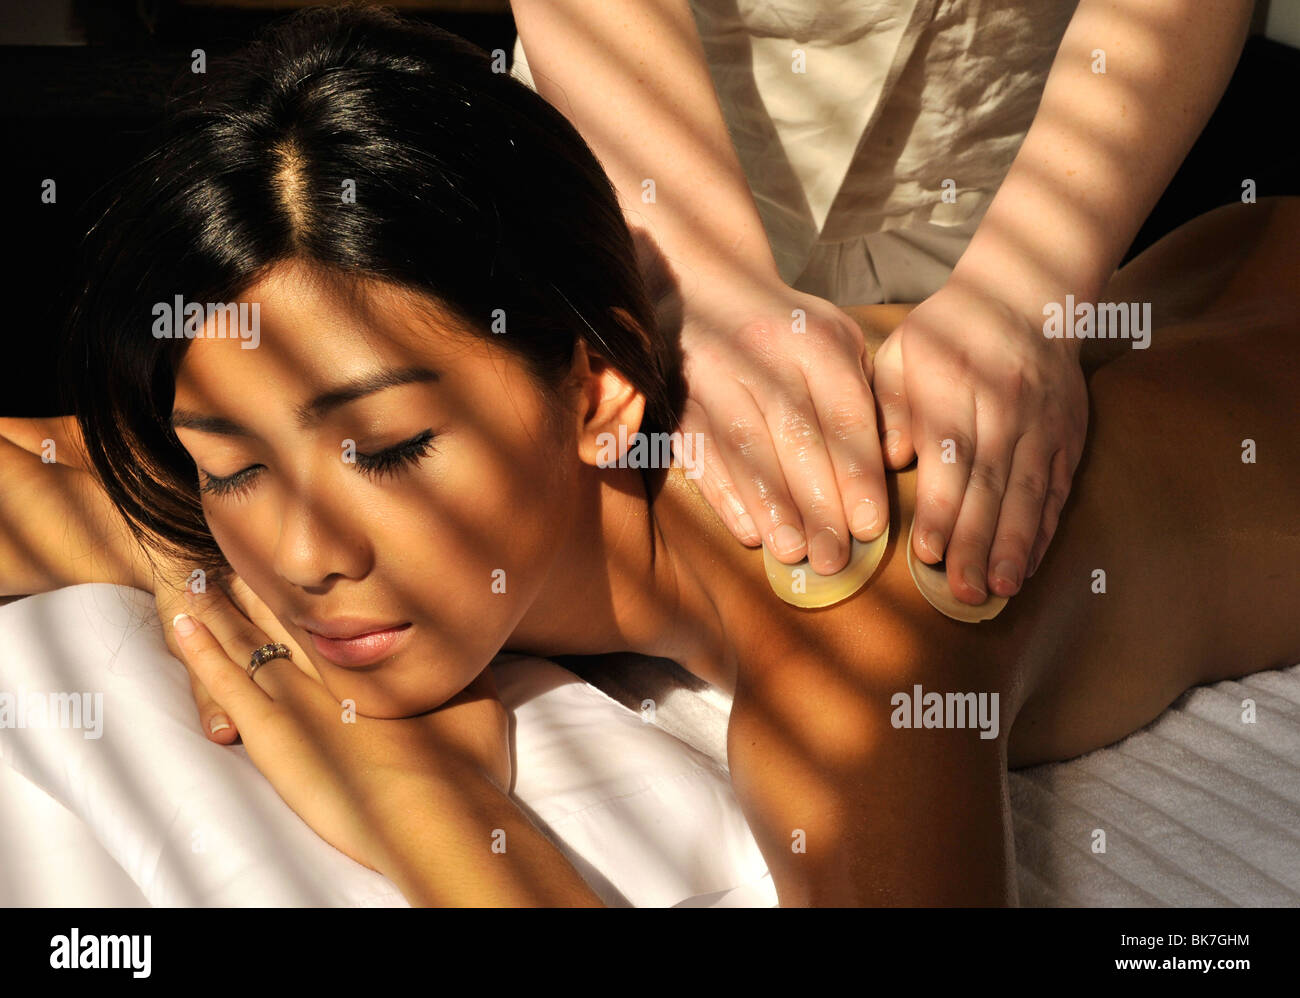 massage oil stock photos & massage oil stock images - alamy